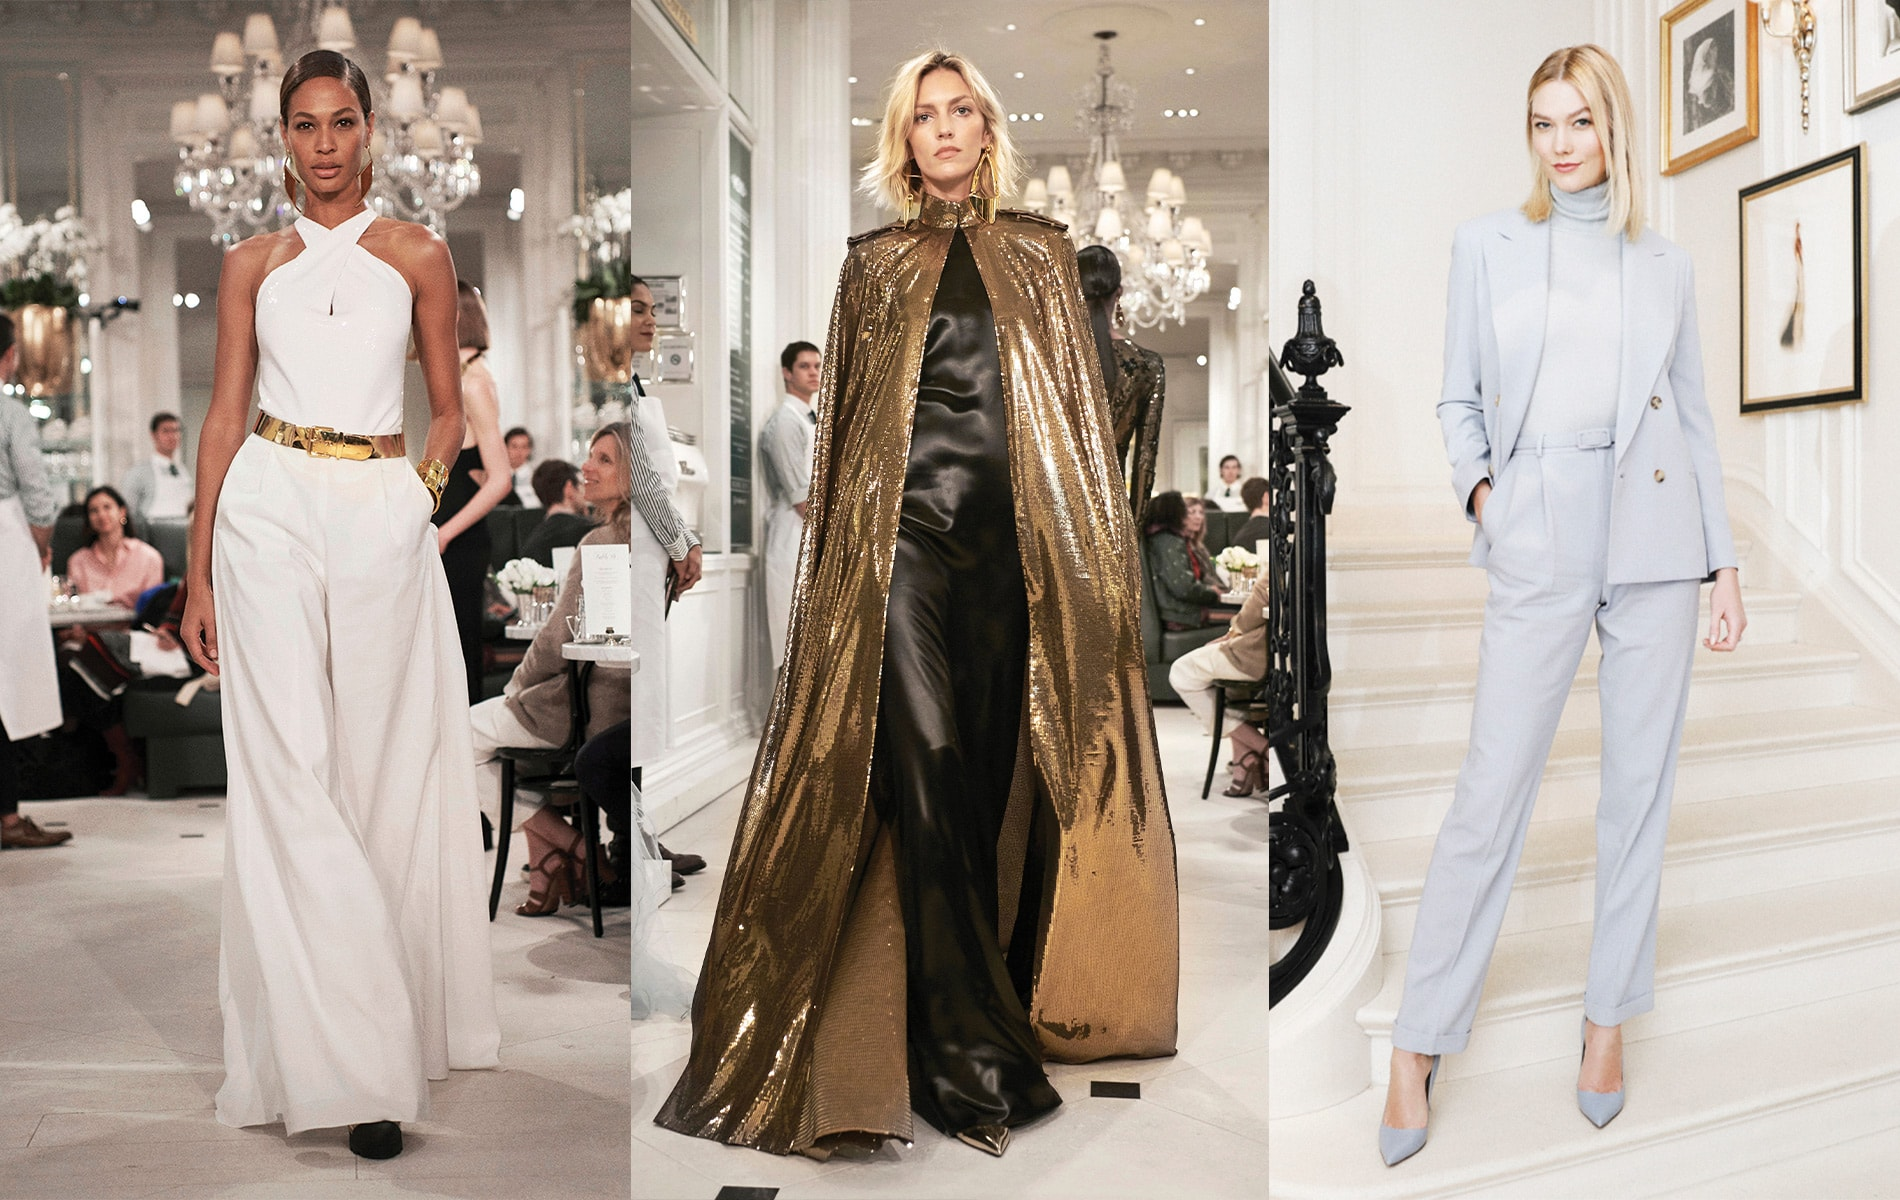 Black chintz suiting evening dress and gold starlight lamé embellished cape with gold specchio pumps at Ralph Lauren's Spring 2019 runway show, held at Ralph's Coffee inside his Madison Avenue flagship store